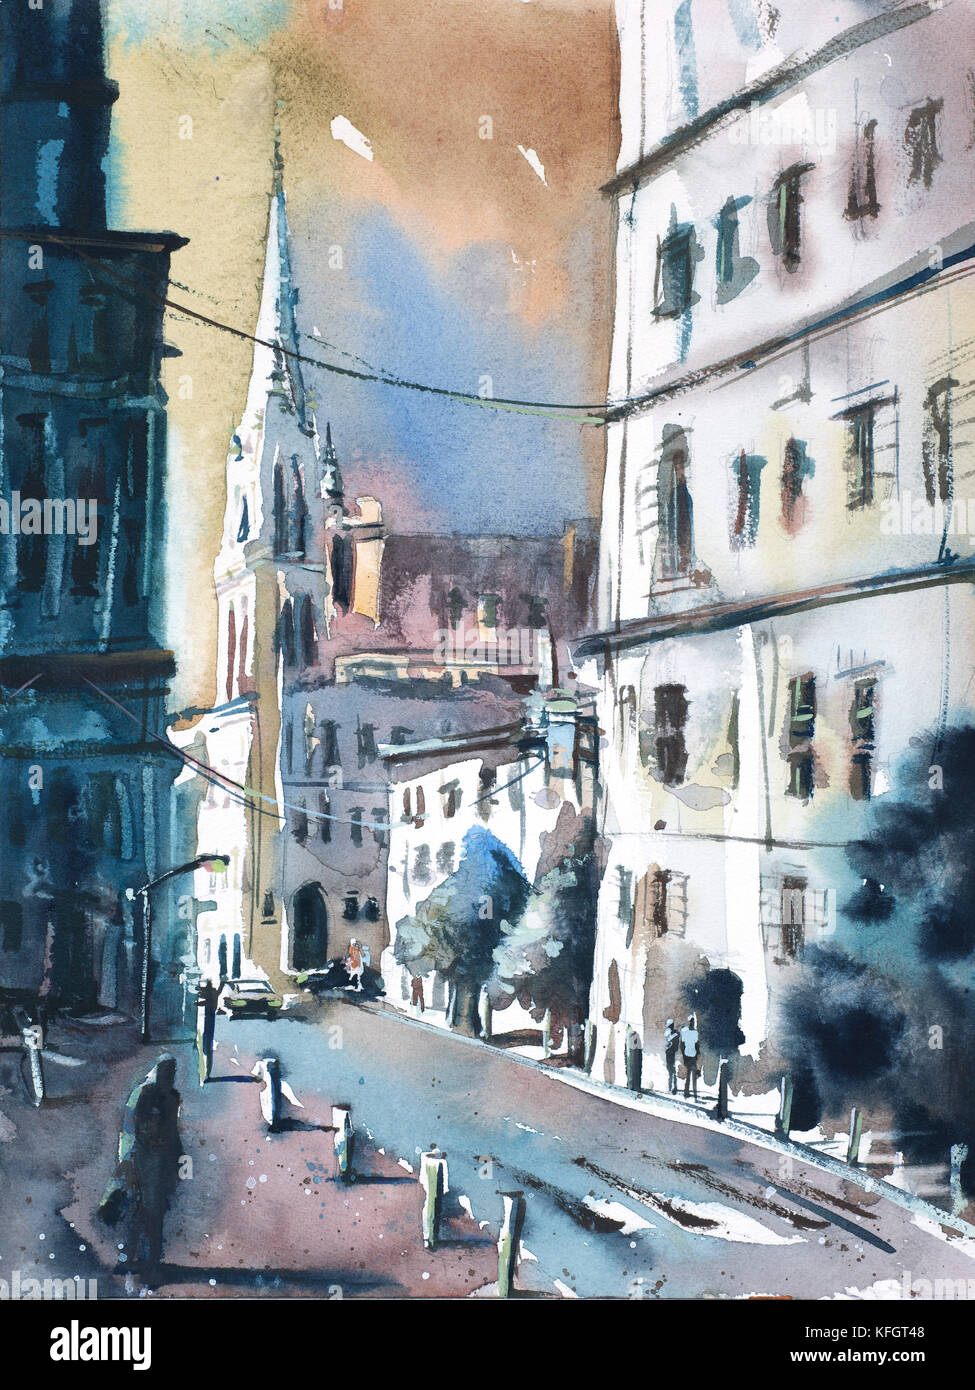 Imagined cityscape scene painted in watercolor by Raleigh, NC artist Ryan Fox Stock Photo